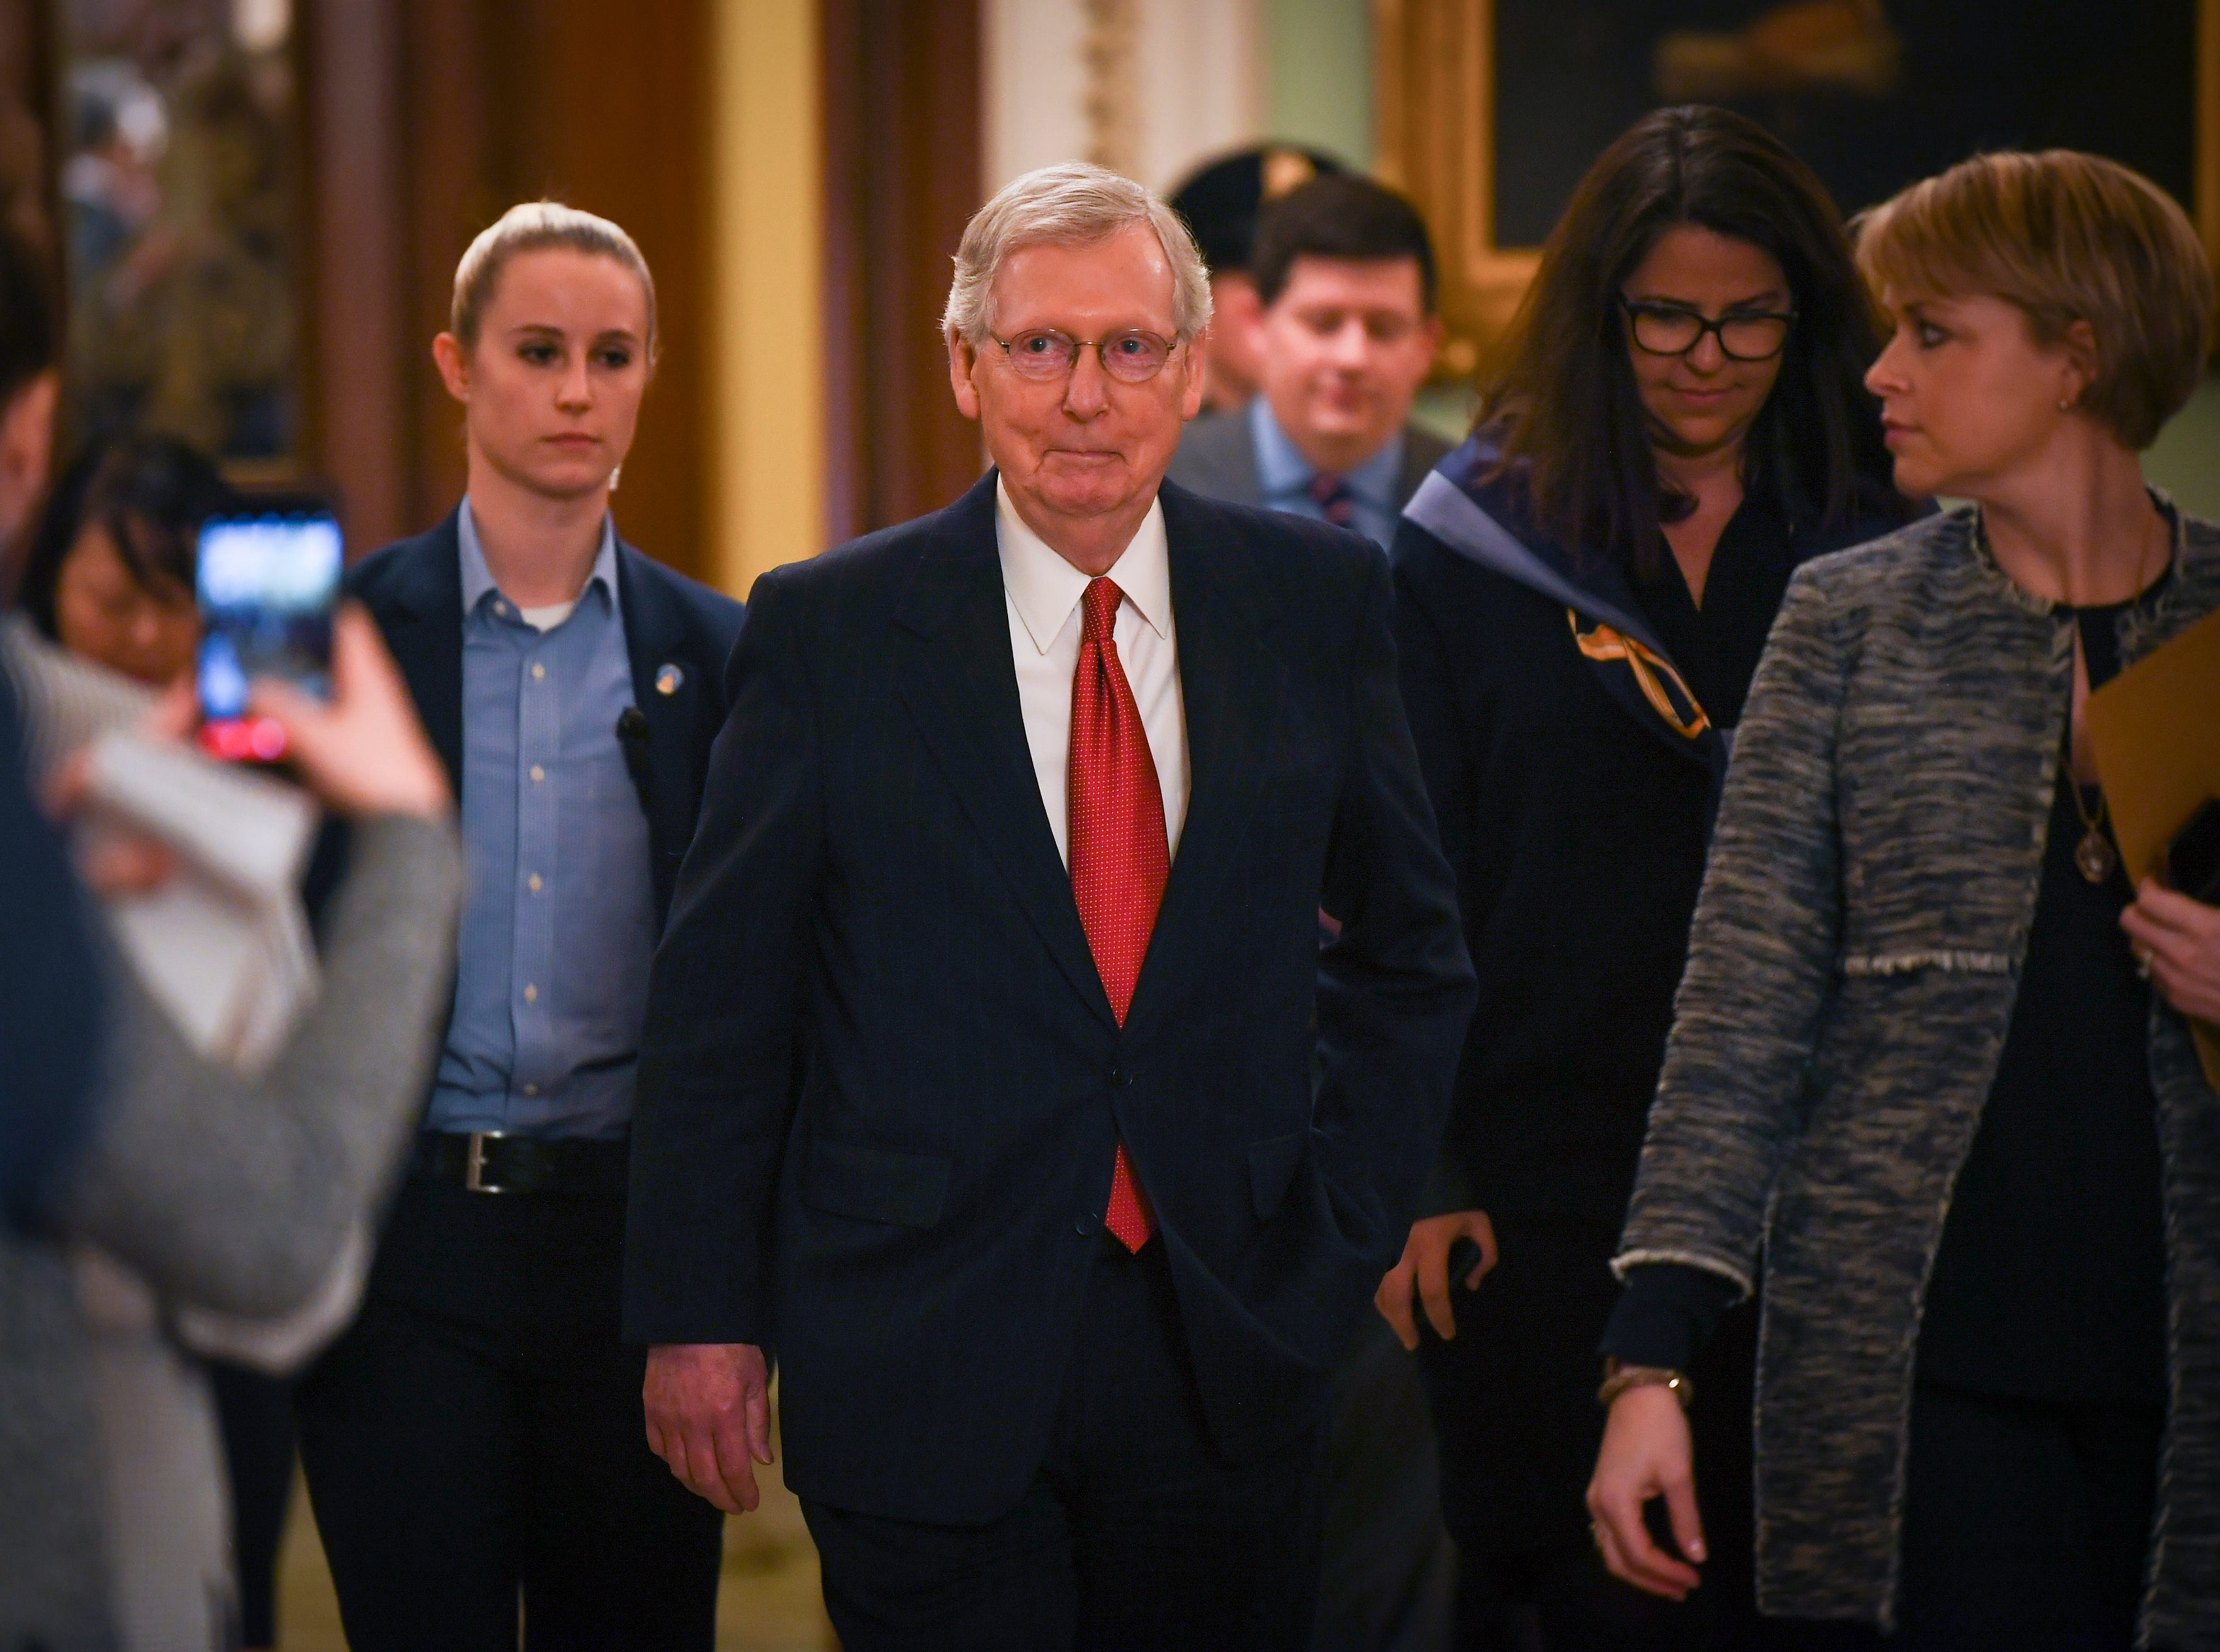 Senate Majority Leader Mitch McConnell (R-KY) departs the Senate Chamber.